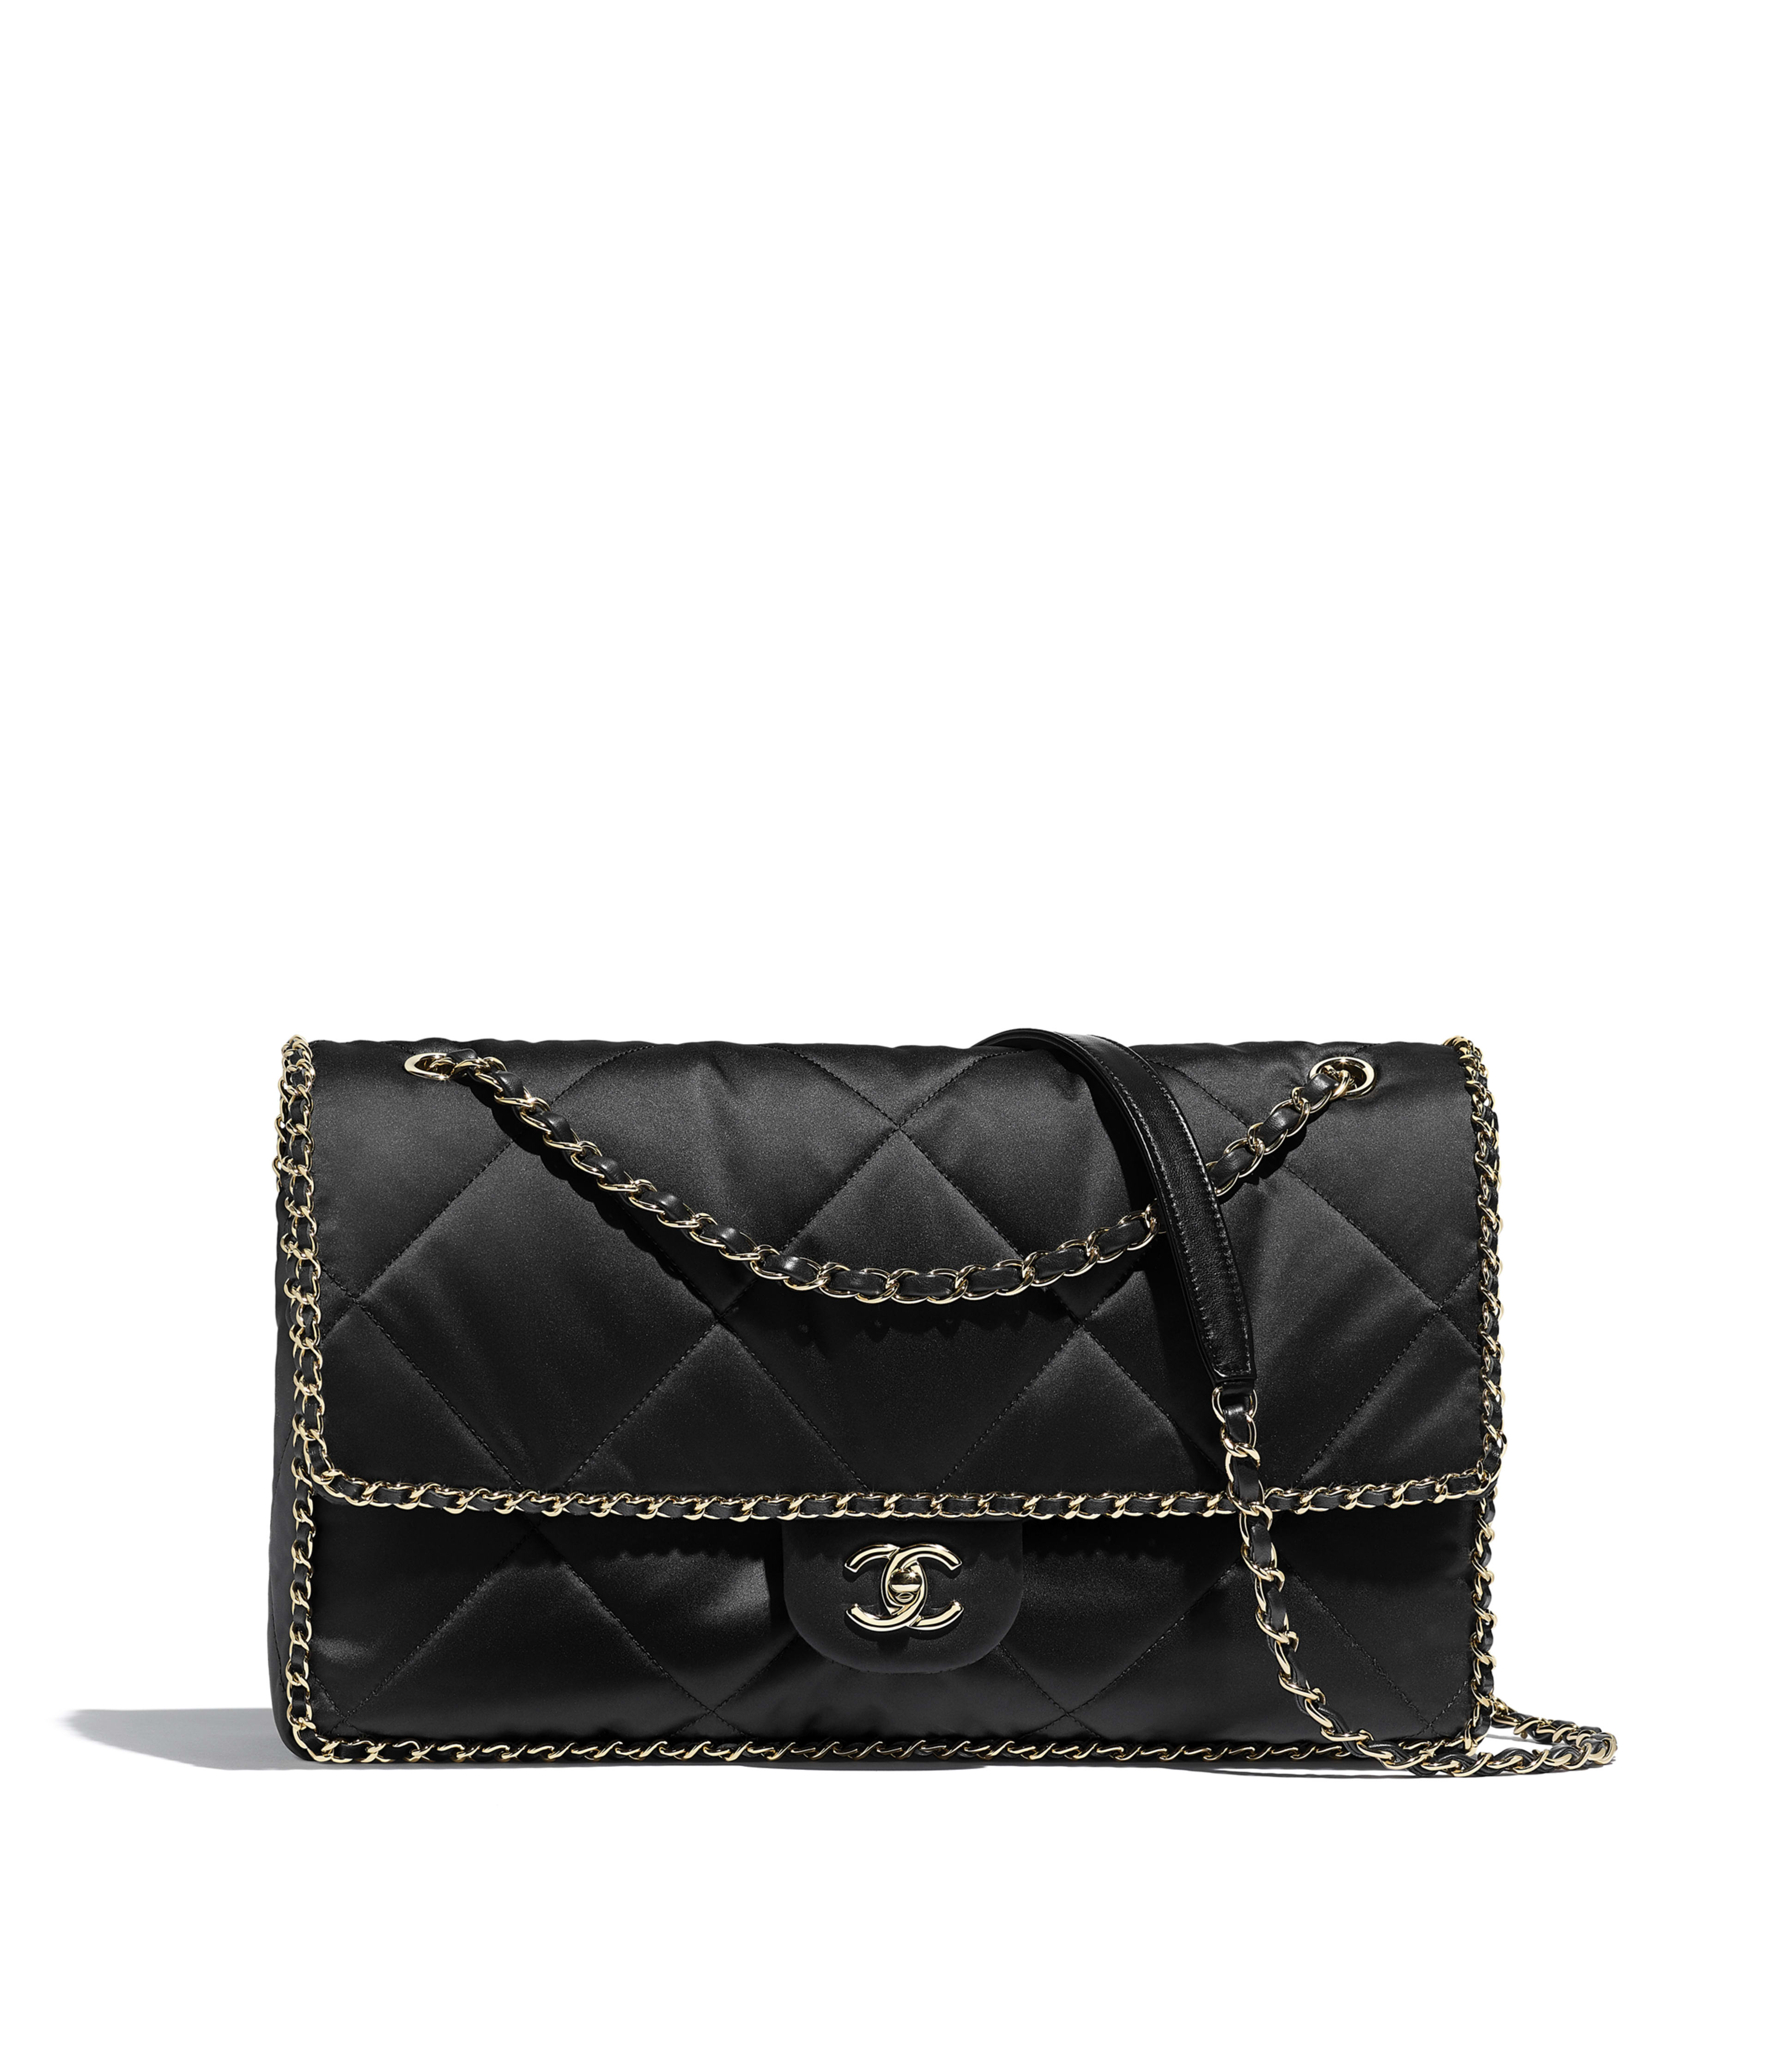 3a34bfeec582 New this season - Handbags | CHANEL